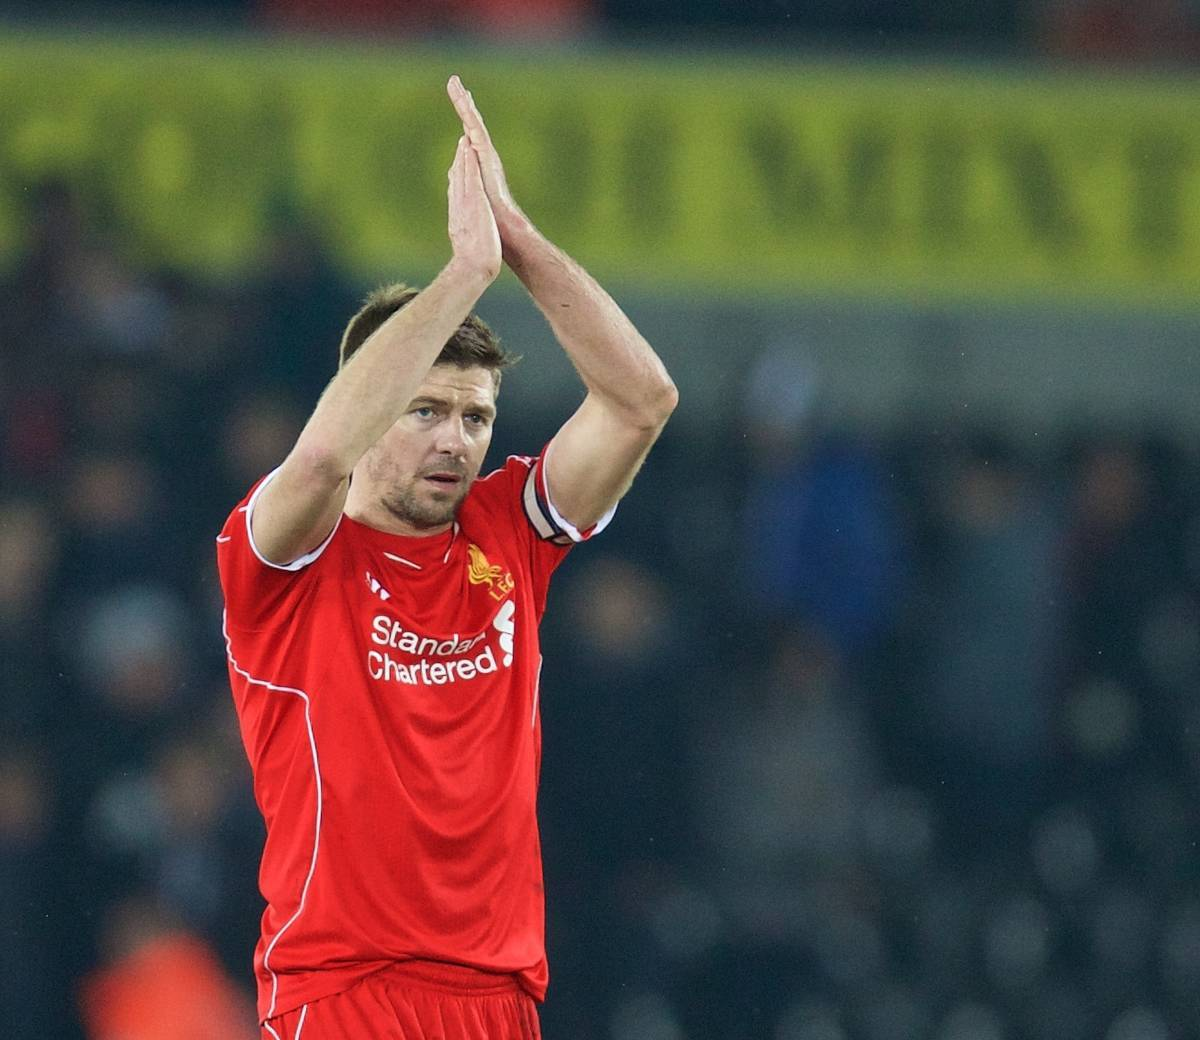 SWANSEA, ENGLAND - Monday, March 16, 2015: Liverpool's captain Steven Gerrard after the 1-0 victory over Swansea City during the Premier League match at the Liberty Stadium. (Pic by David Rawcliffe/Propaganda)